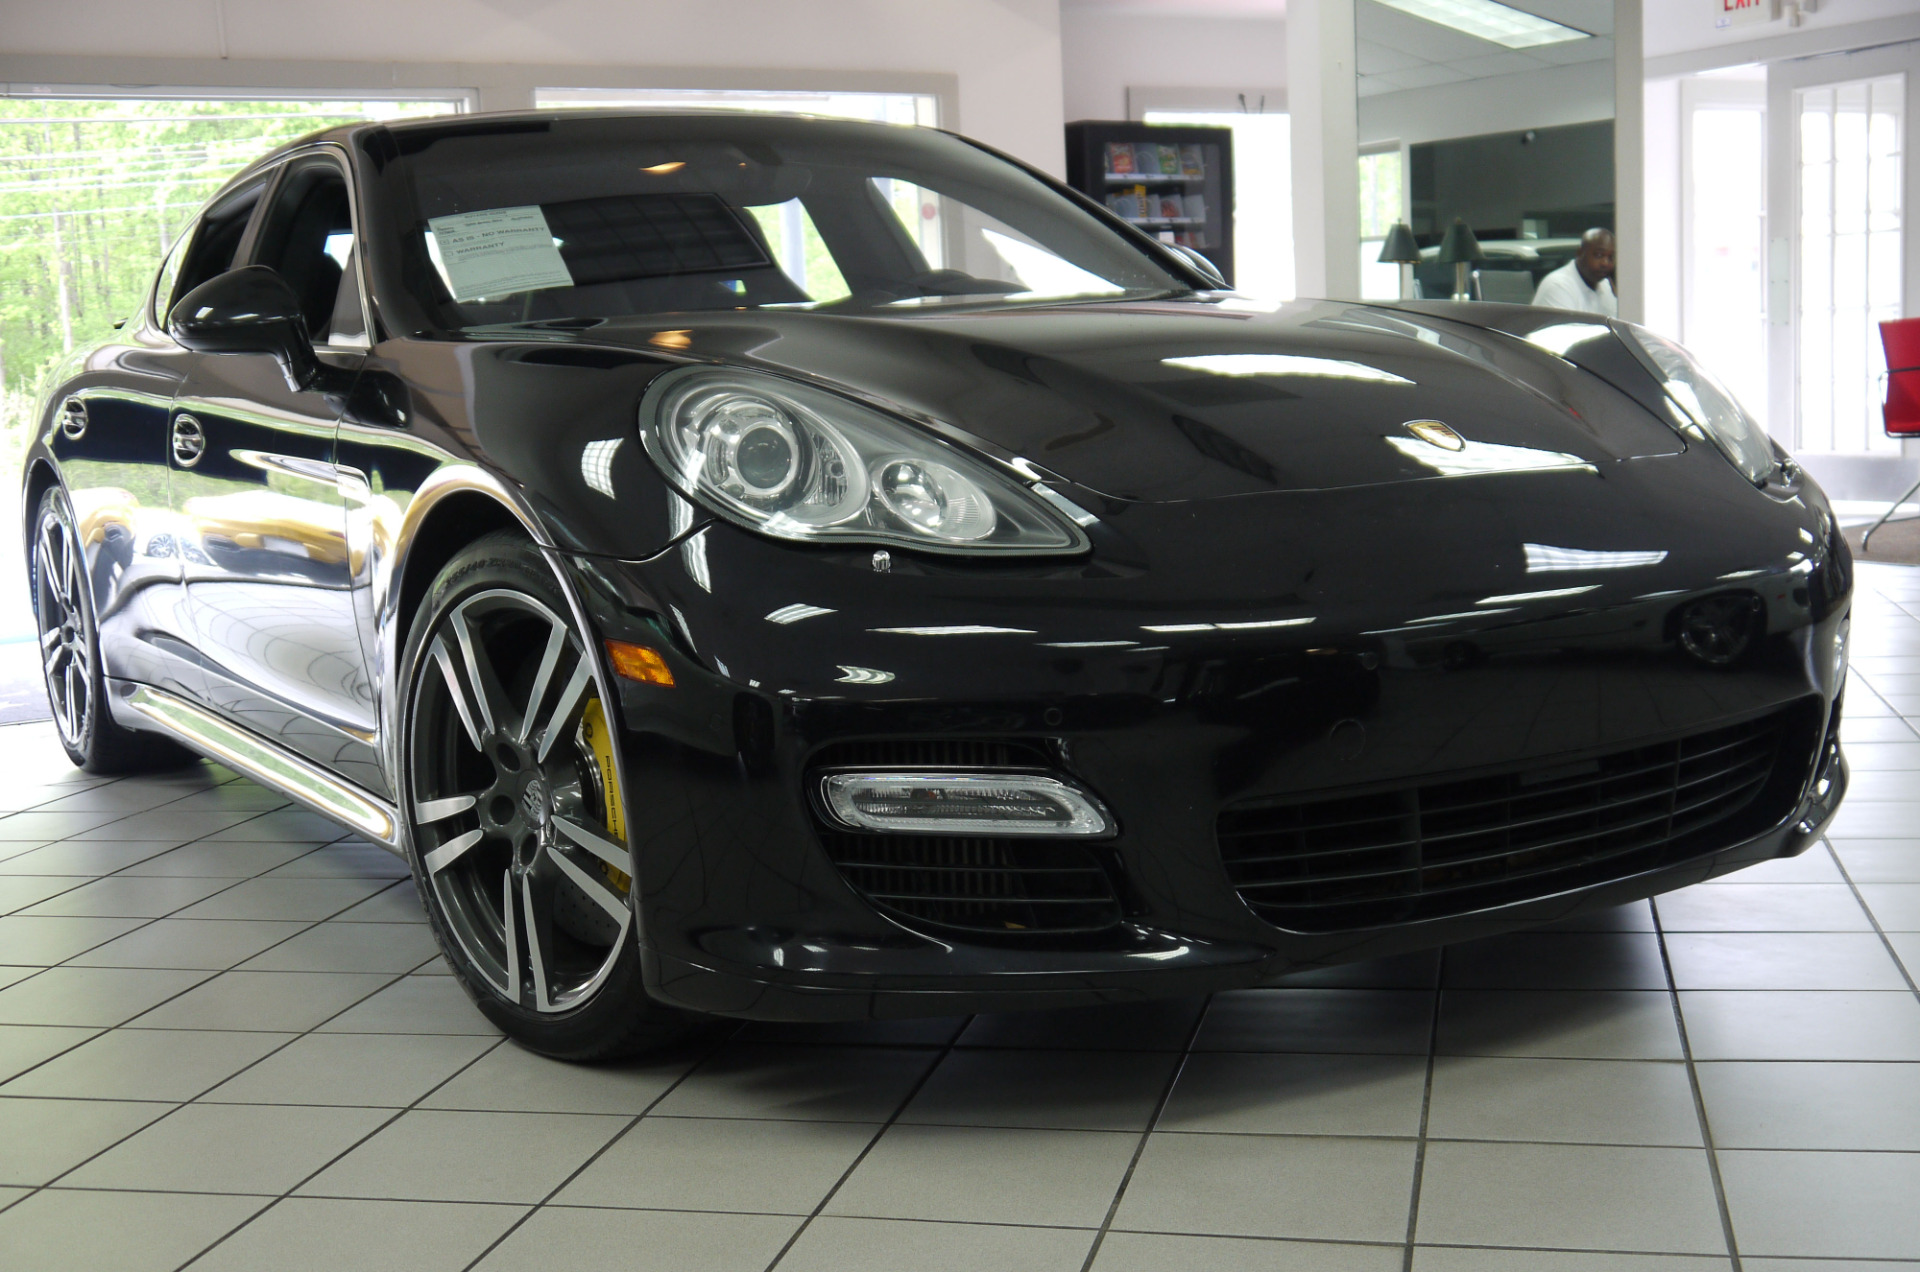 used 2010 porsche panamera turbo marietta ga. Black Bedroom Furniture Sets. Home Design Ideas